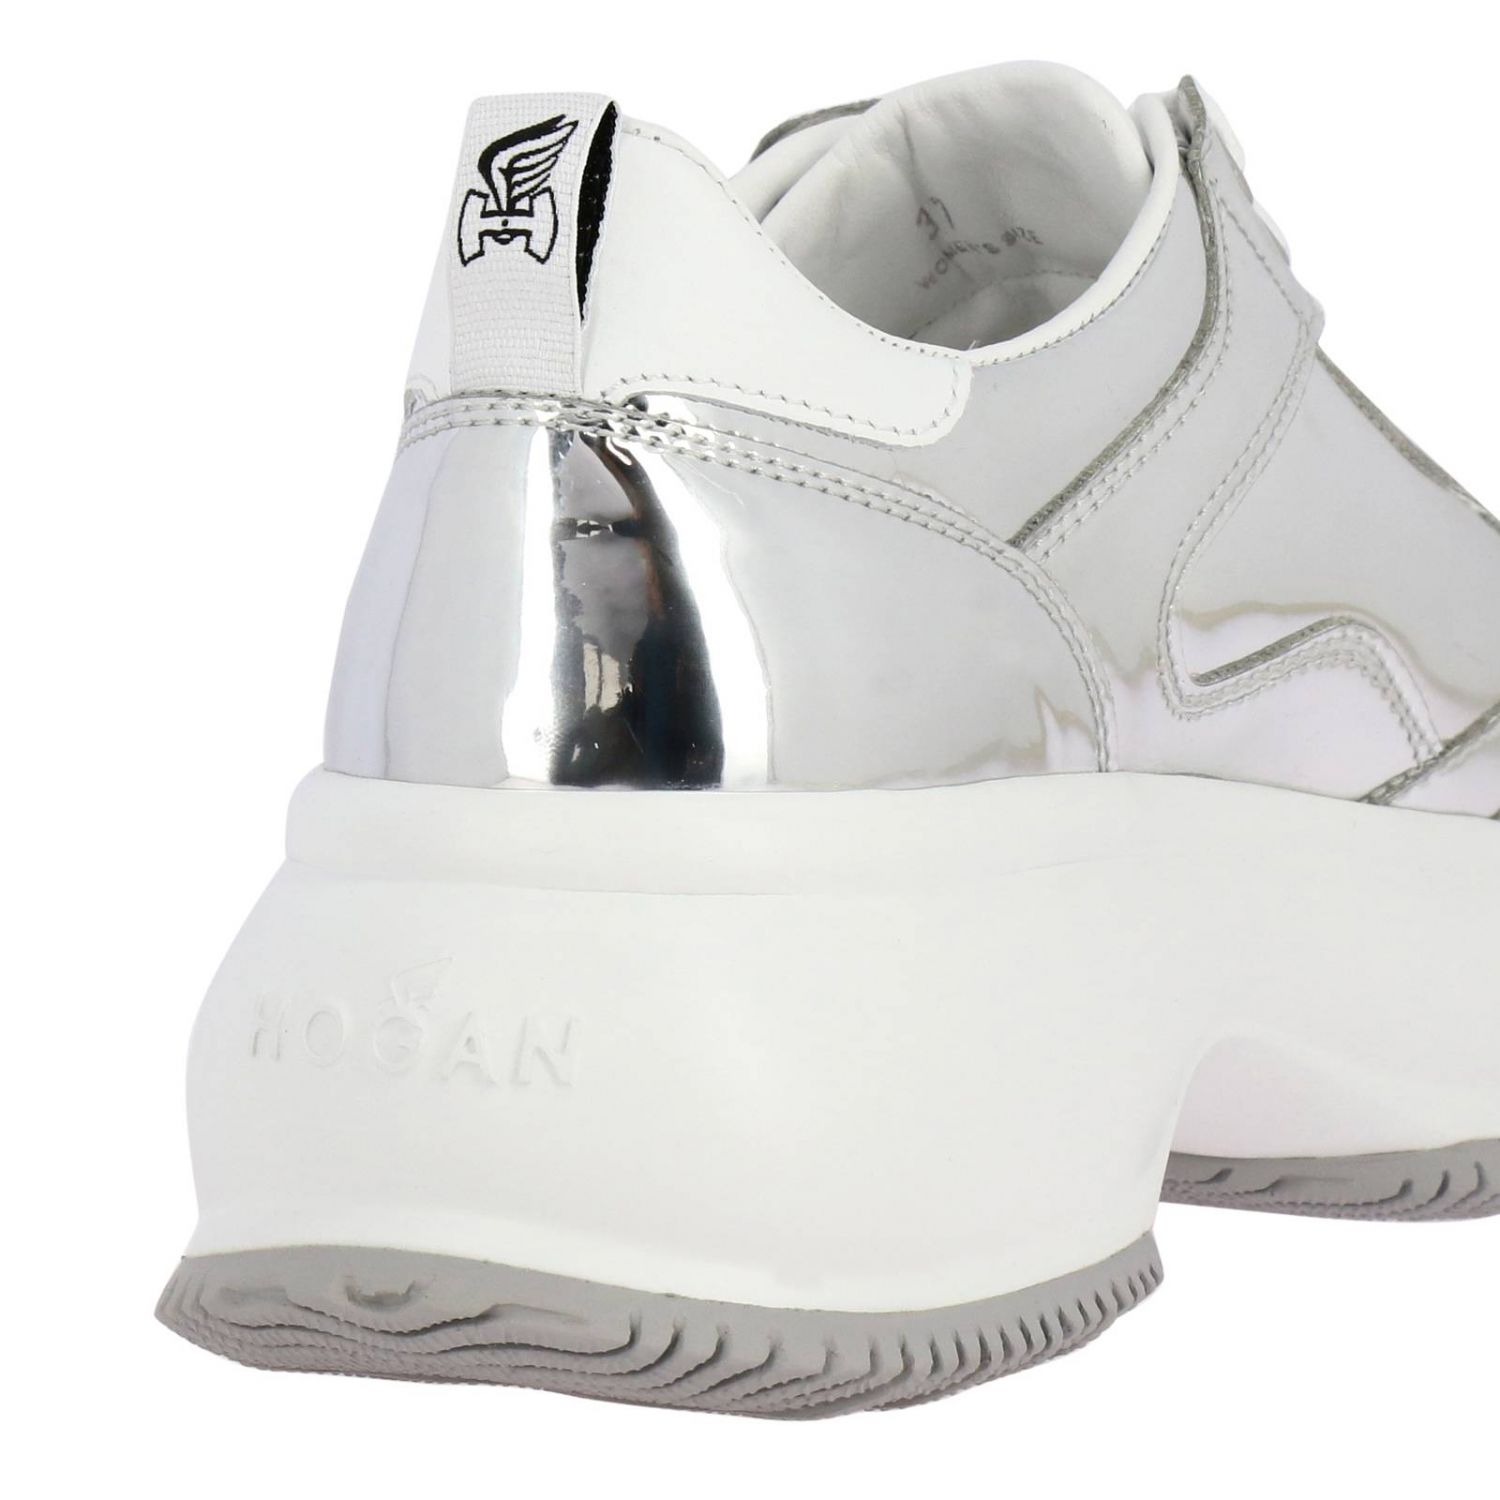 Sneakers Hogan: Active one Maxi Hogan mirrored leather sneakers and smooth leather silver 4